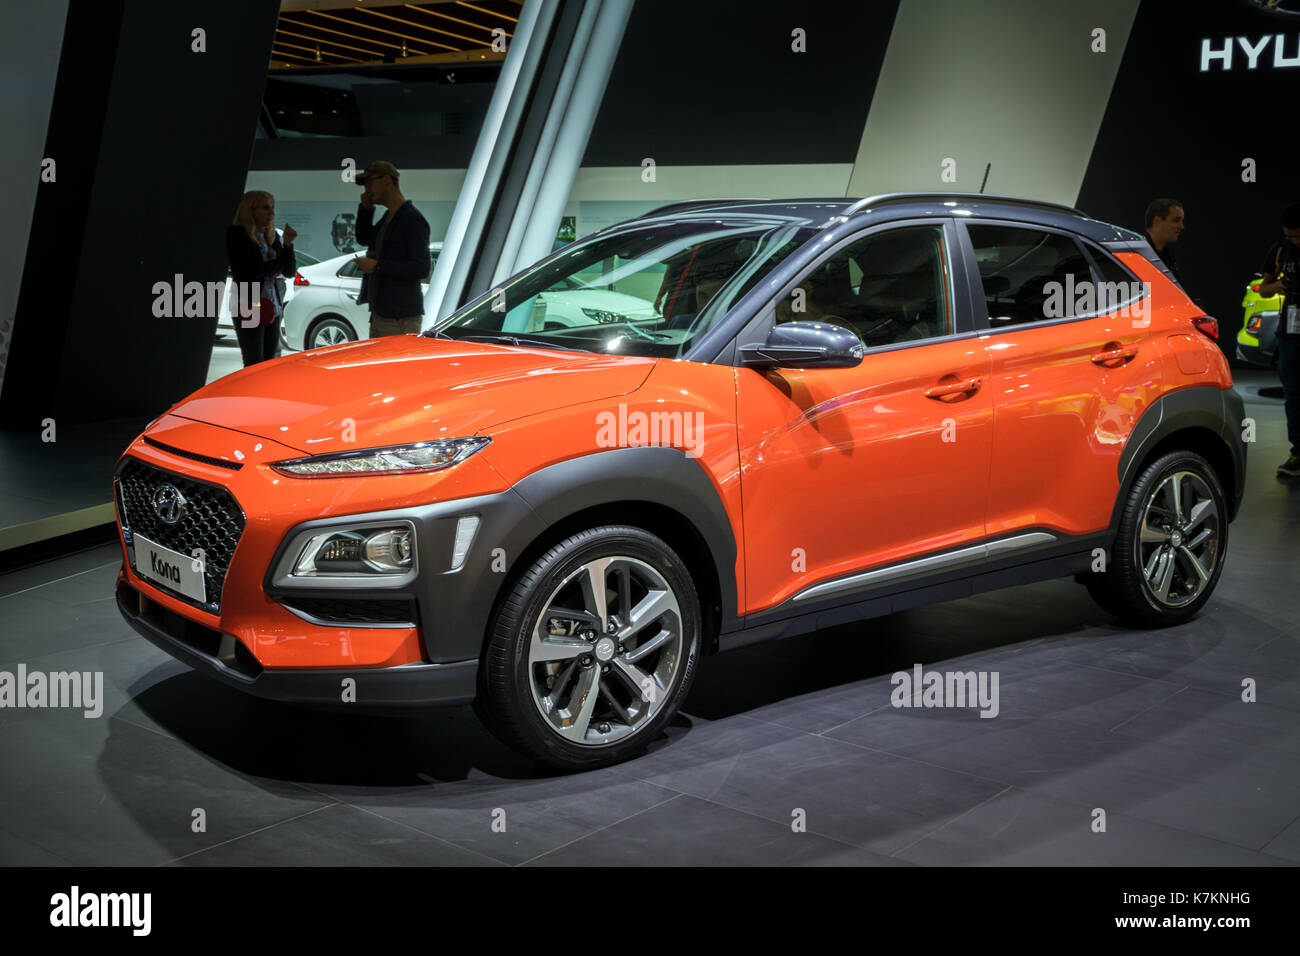 suv hyundai kona stock photos suv hyundai kona stock images alamy. Black Bedroom Furniture Sets. Home Design Ideas